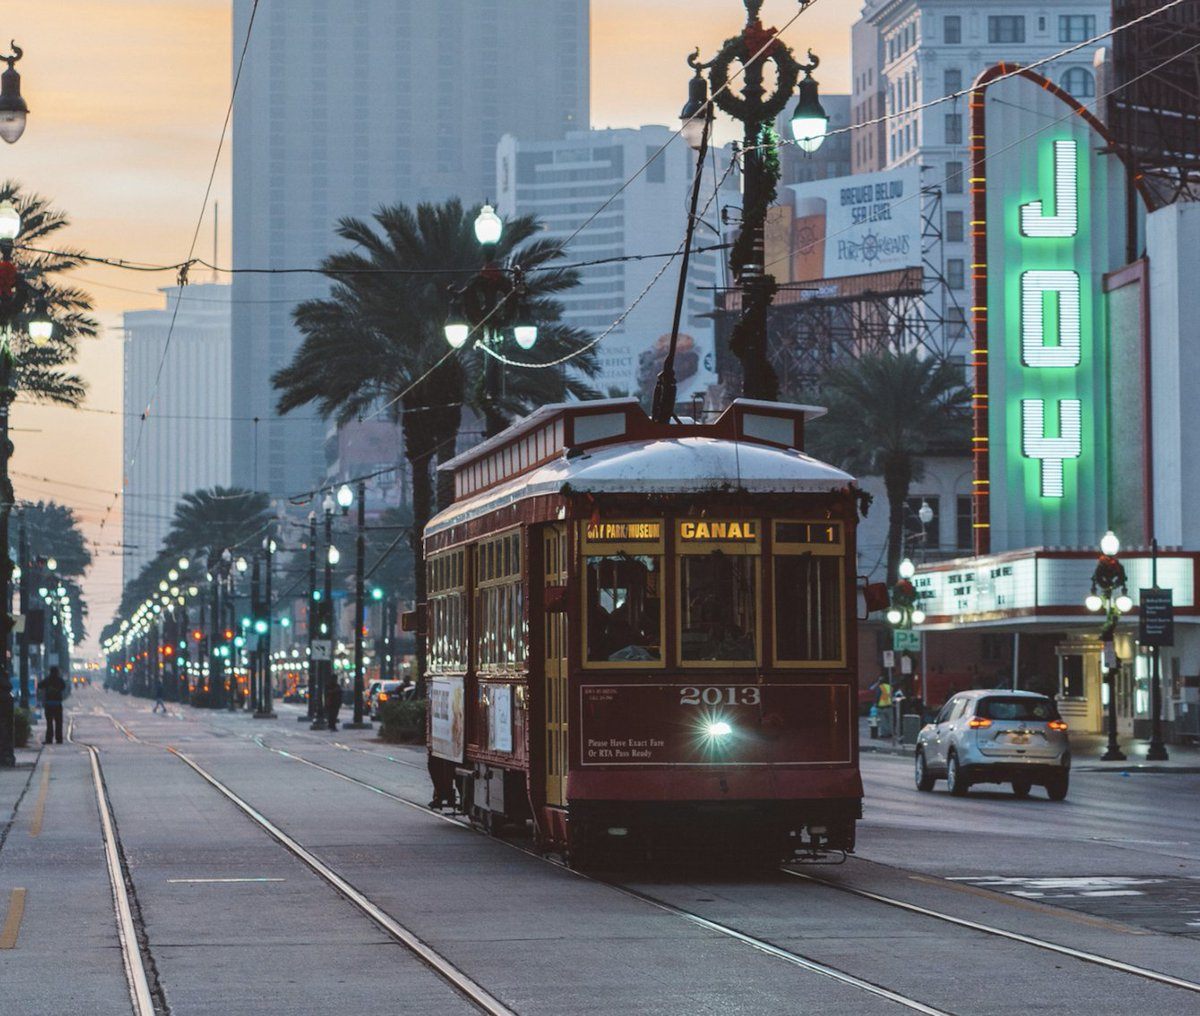 b57a83bdc The  RobbReport has placed New Orleans on its exclusive list of the best  places to travel in February  http   bit.ly 2CECTDq  OneTimeInNOLApic. twitter.com  ...